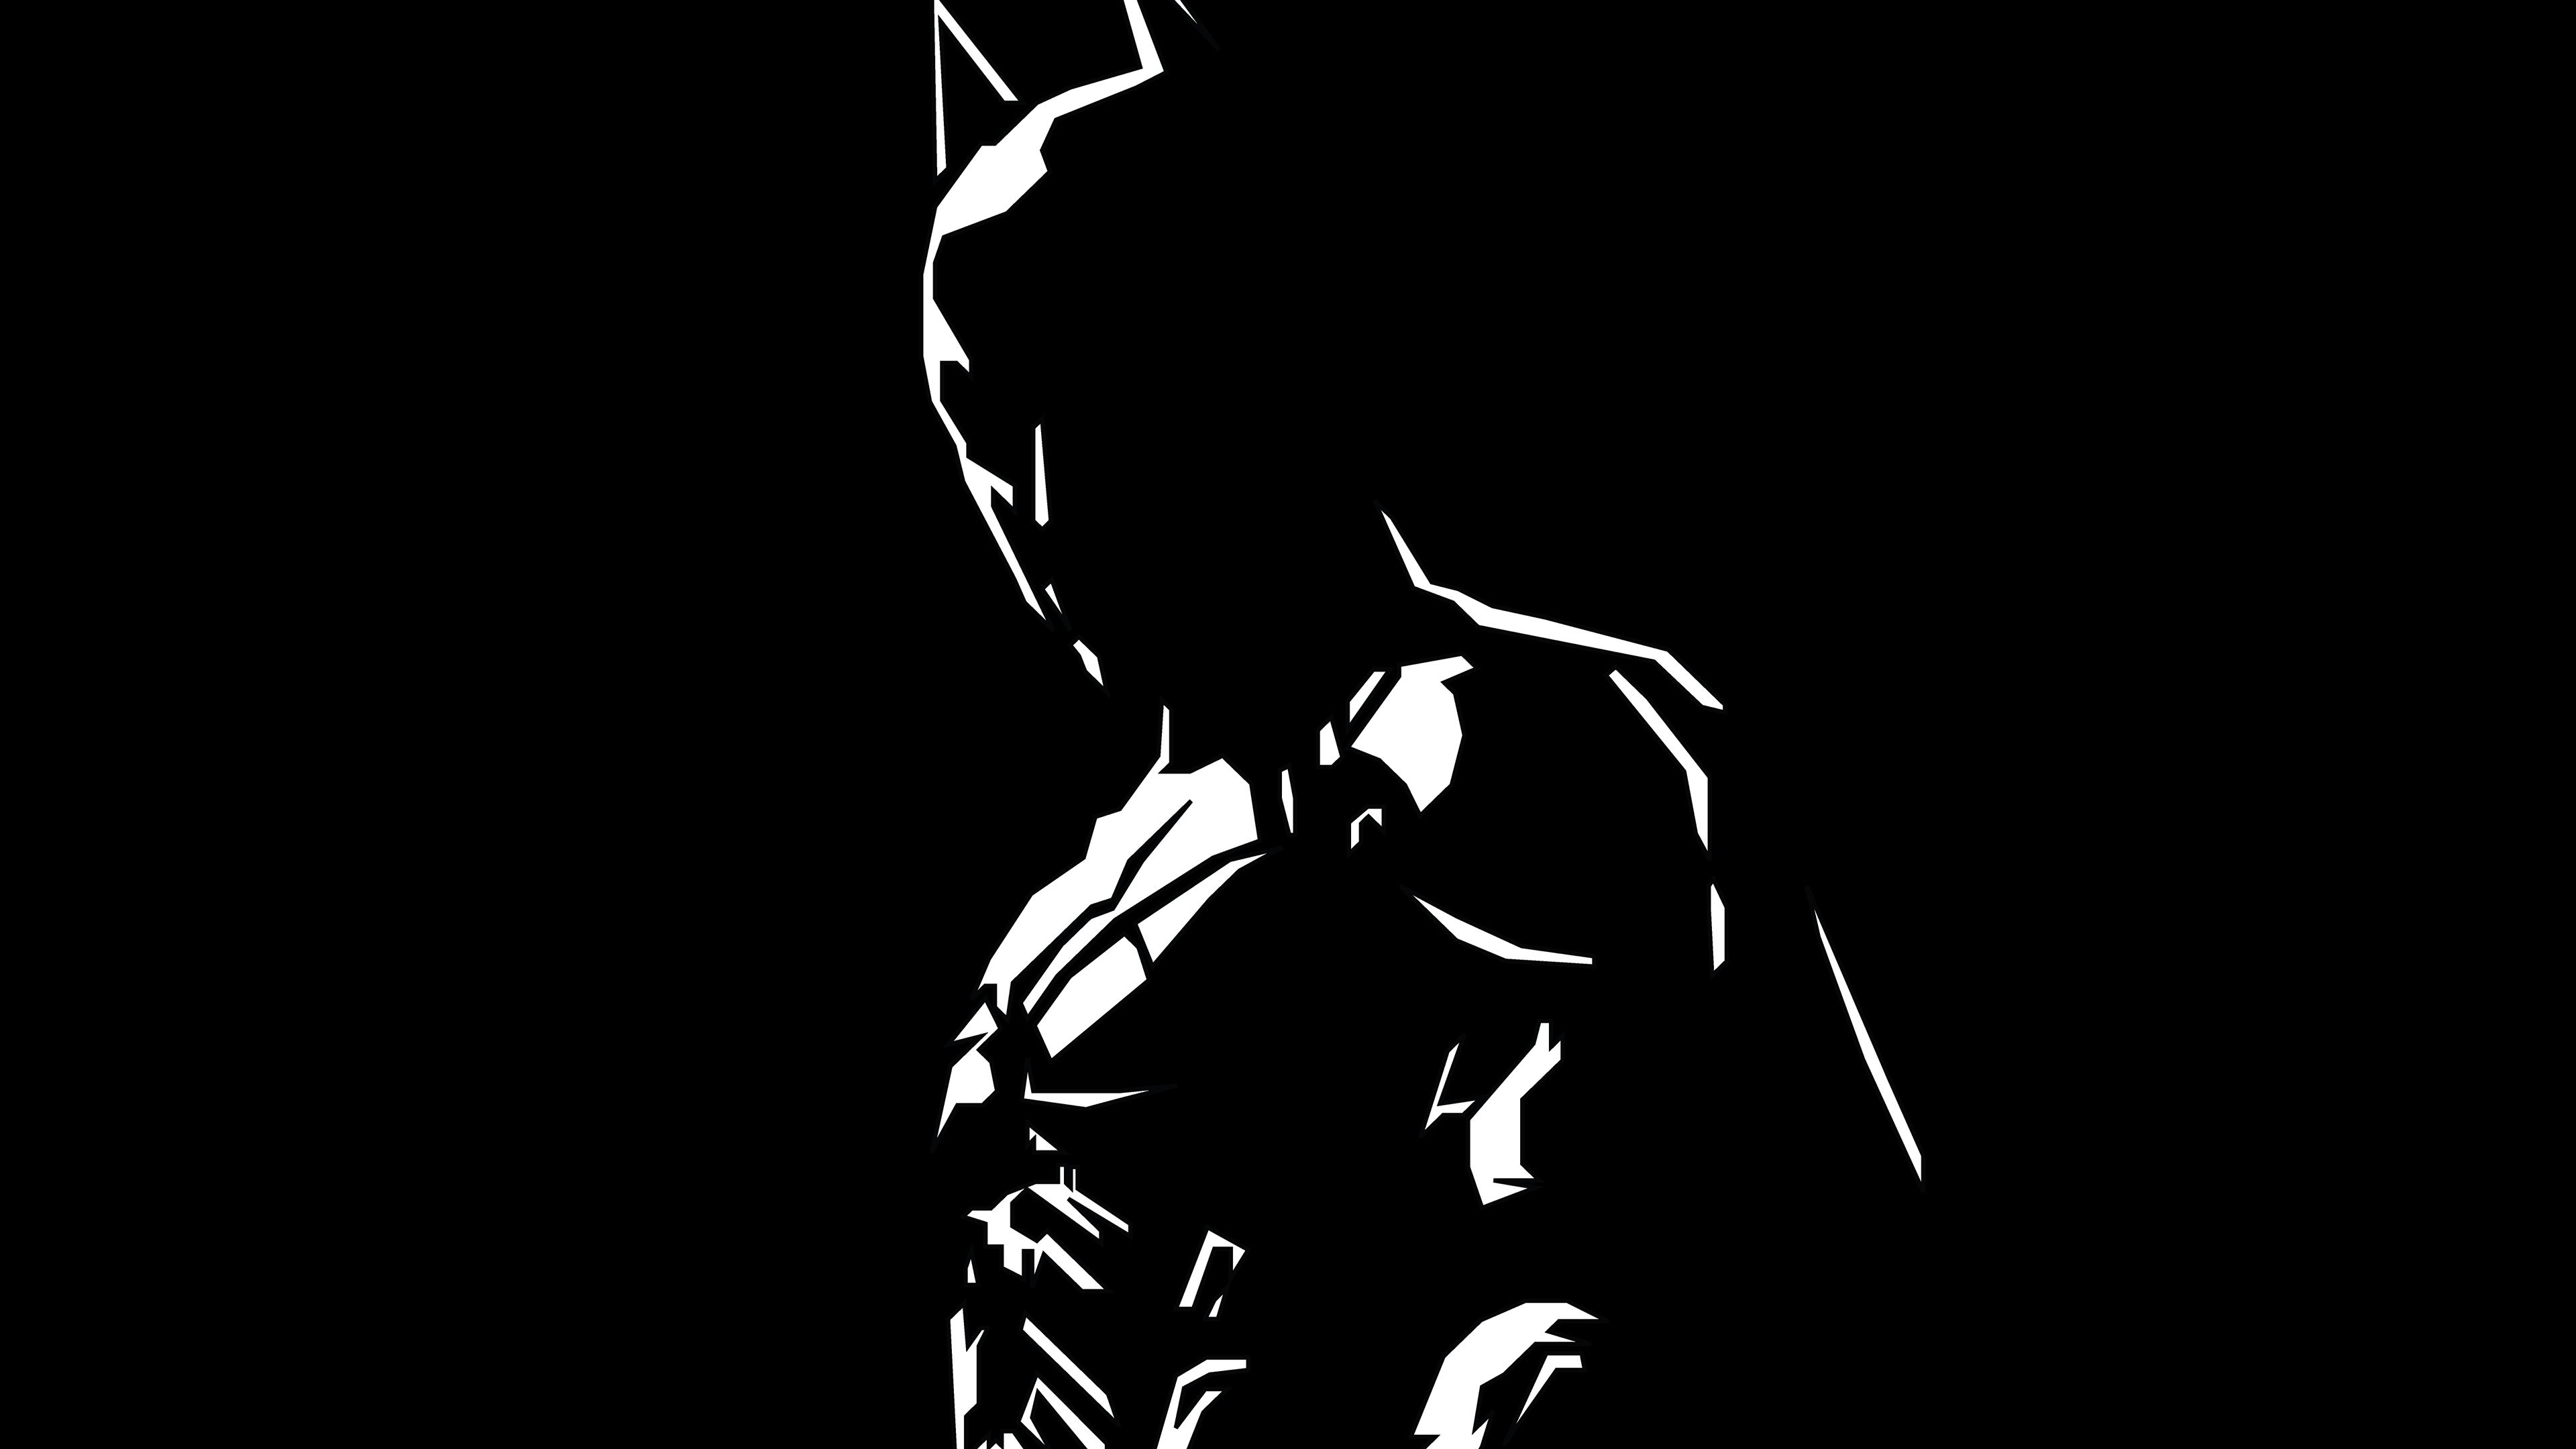 Dark Knight Minimalism 4k Wallpapers Superheroes Wallpapers Hd Wallpapers Behance Wallpapers Batman W Batman Wallpaper Superhero Wallpaper Superhero Artwork